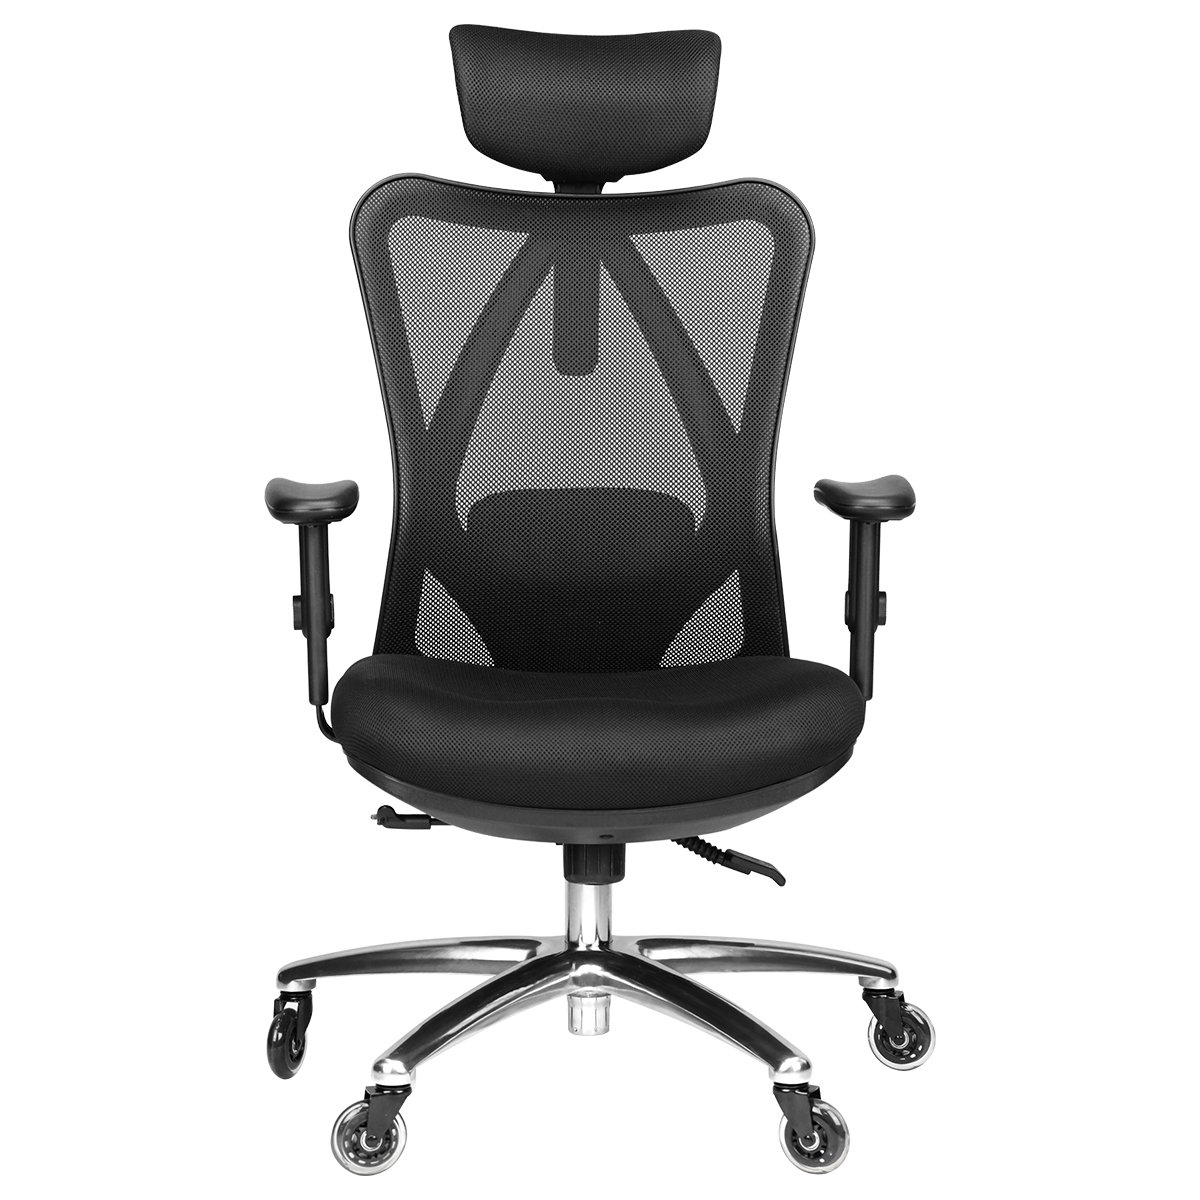 Duramont Ergonomic Adjustable Office Chair with Lumbar Support and Rollerblade Wheels - High Back with Breathable